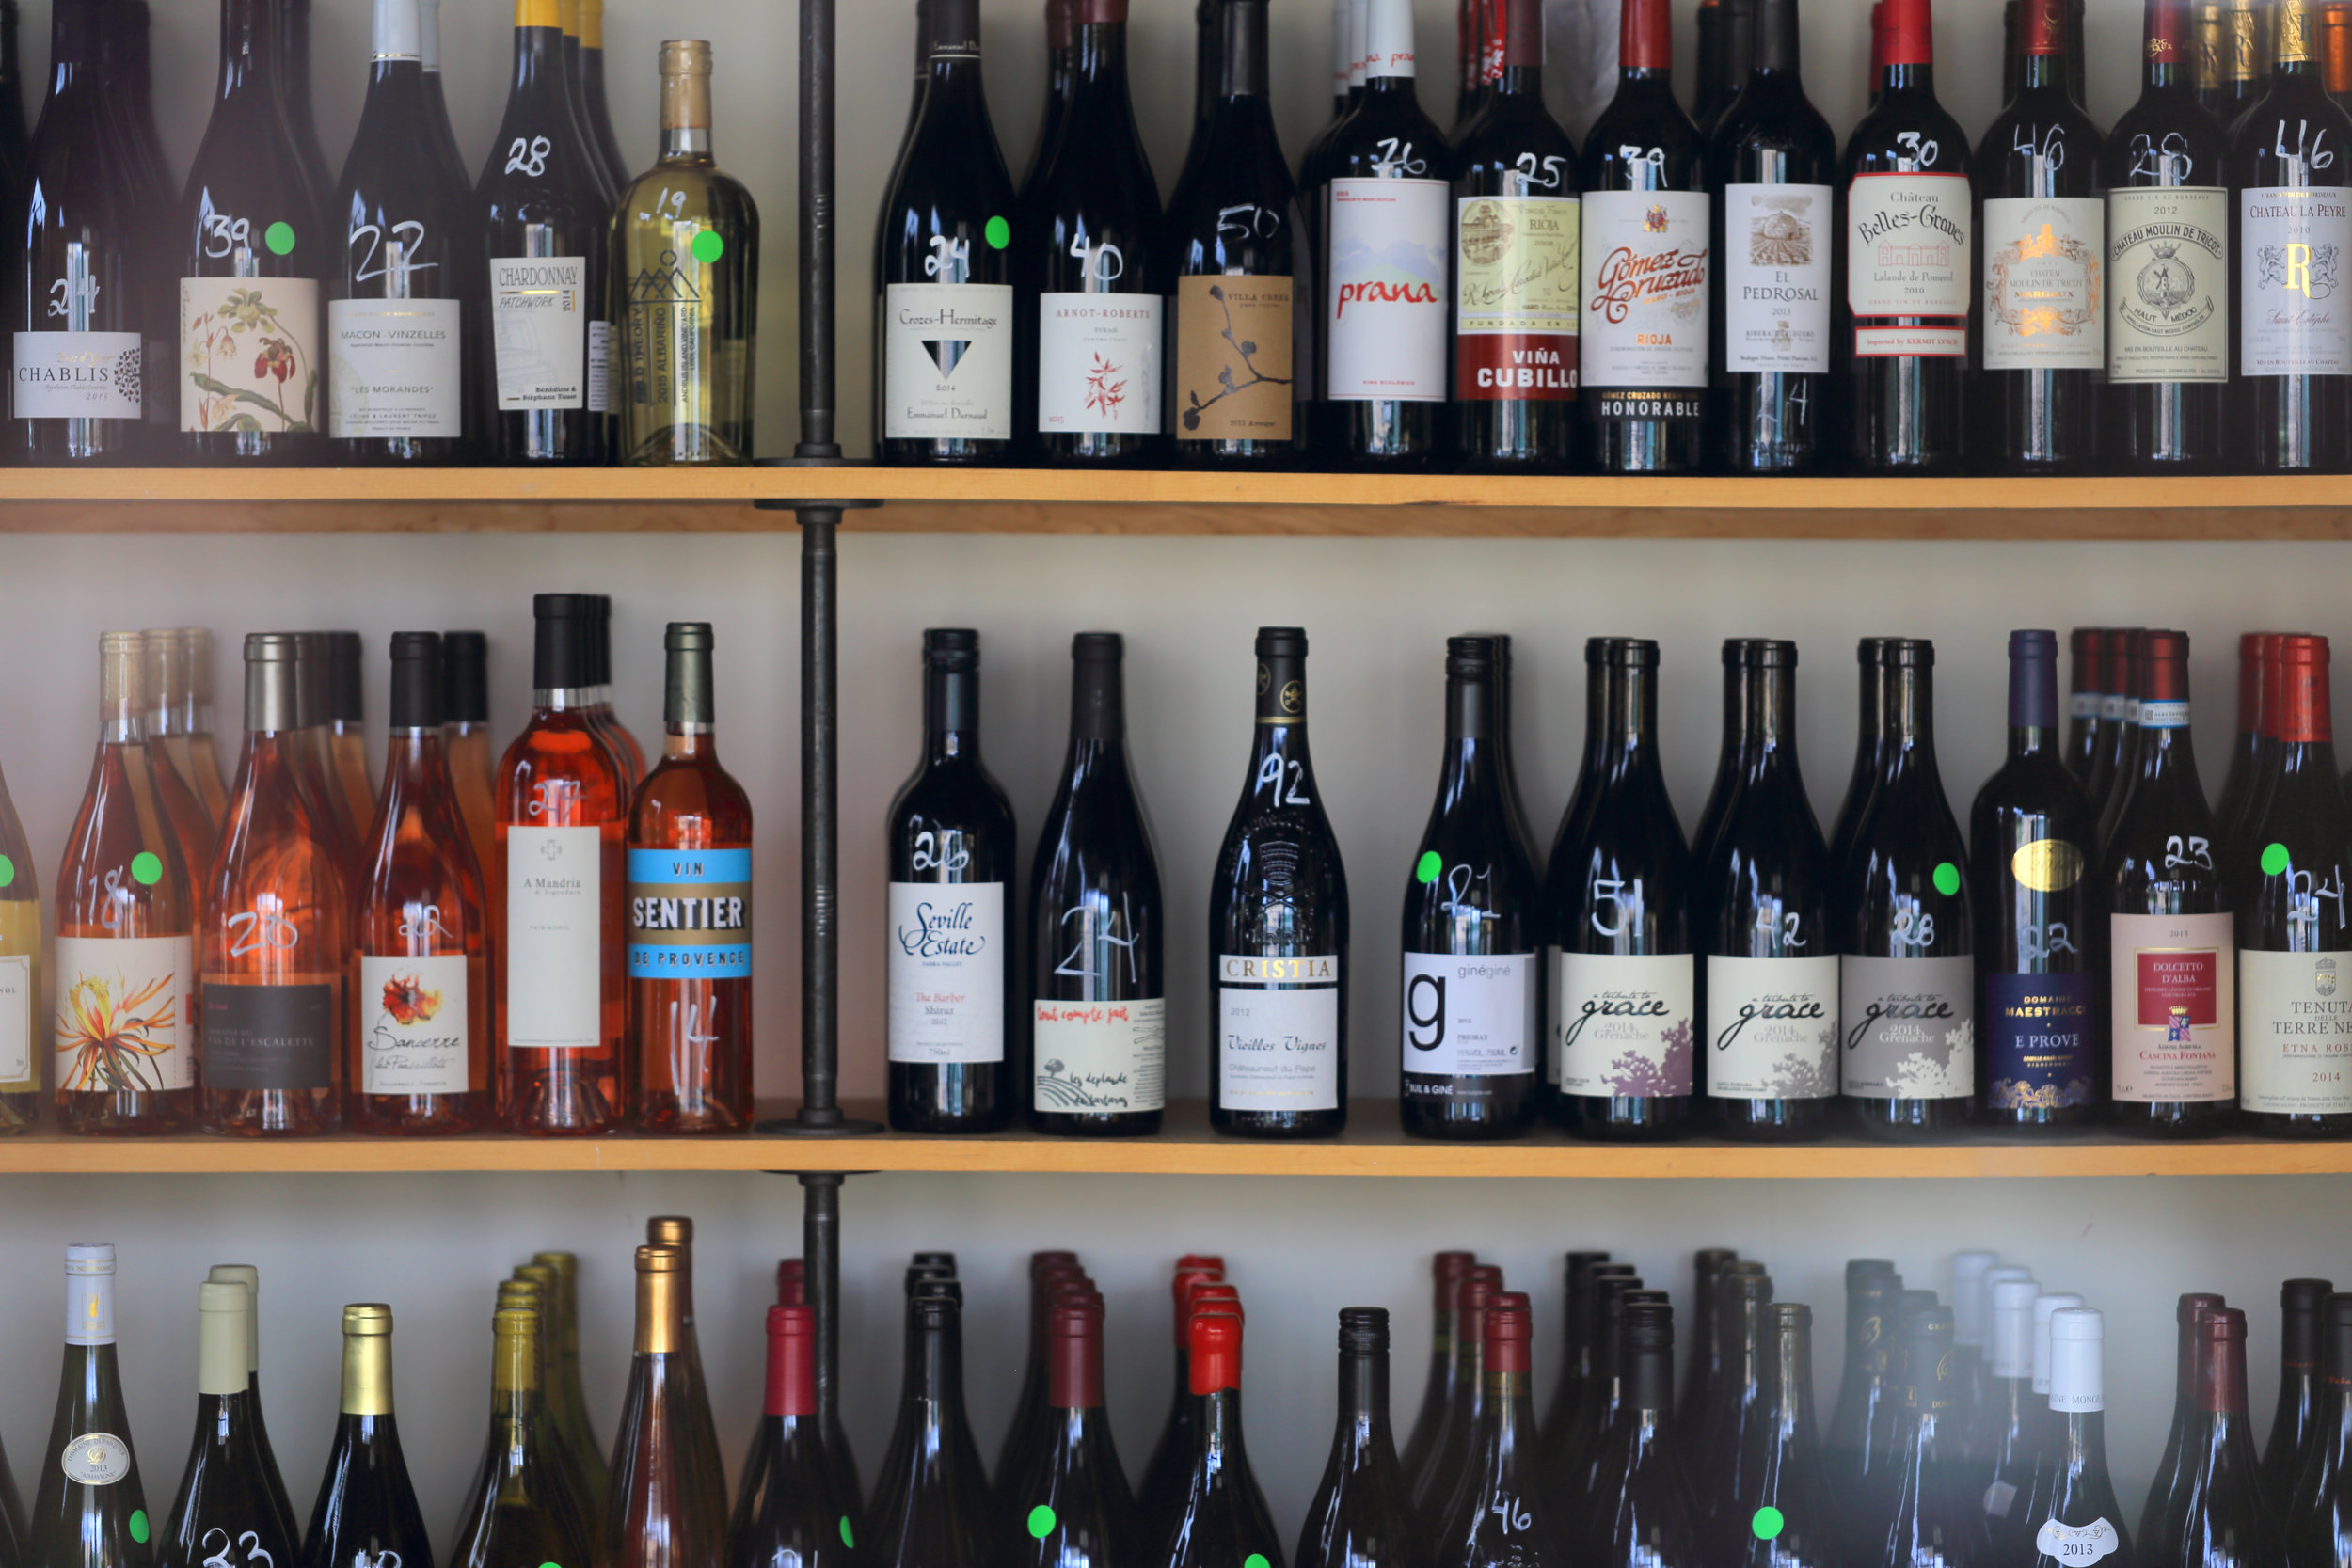 Worldly wine selection